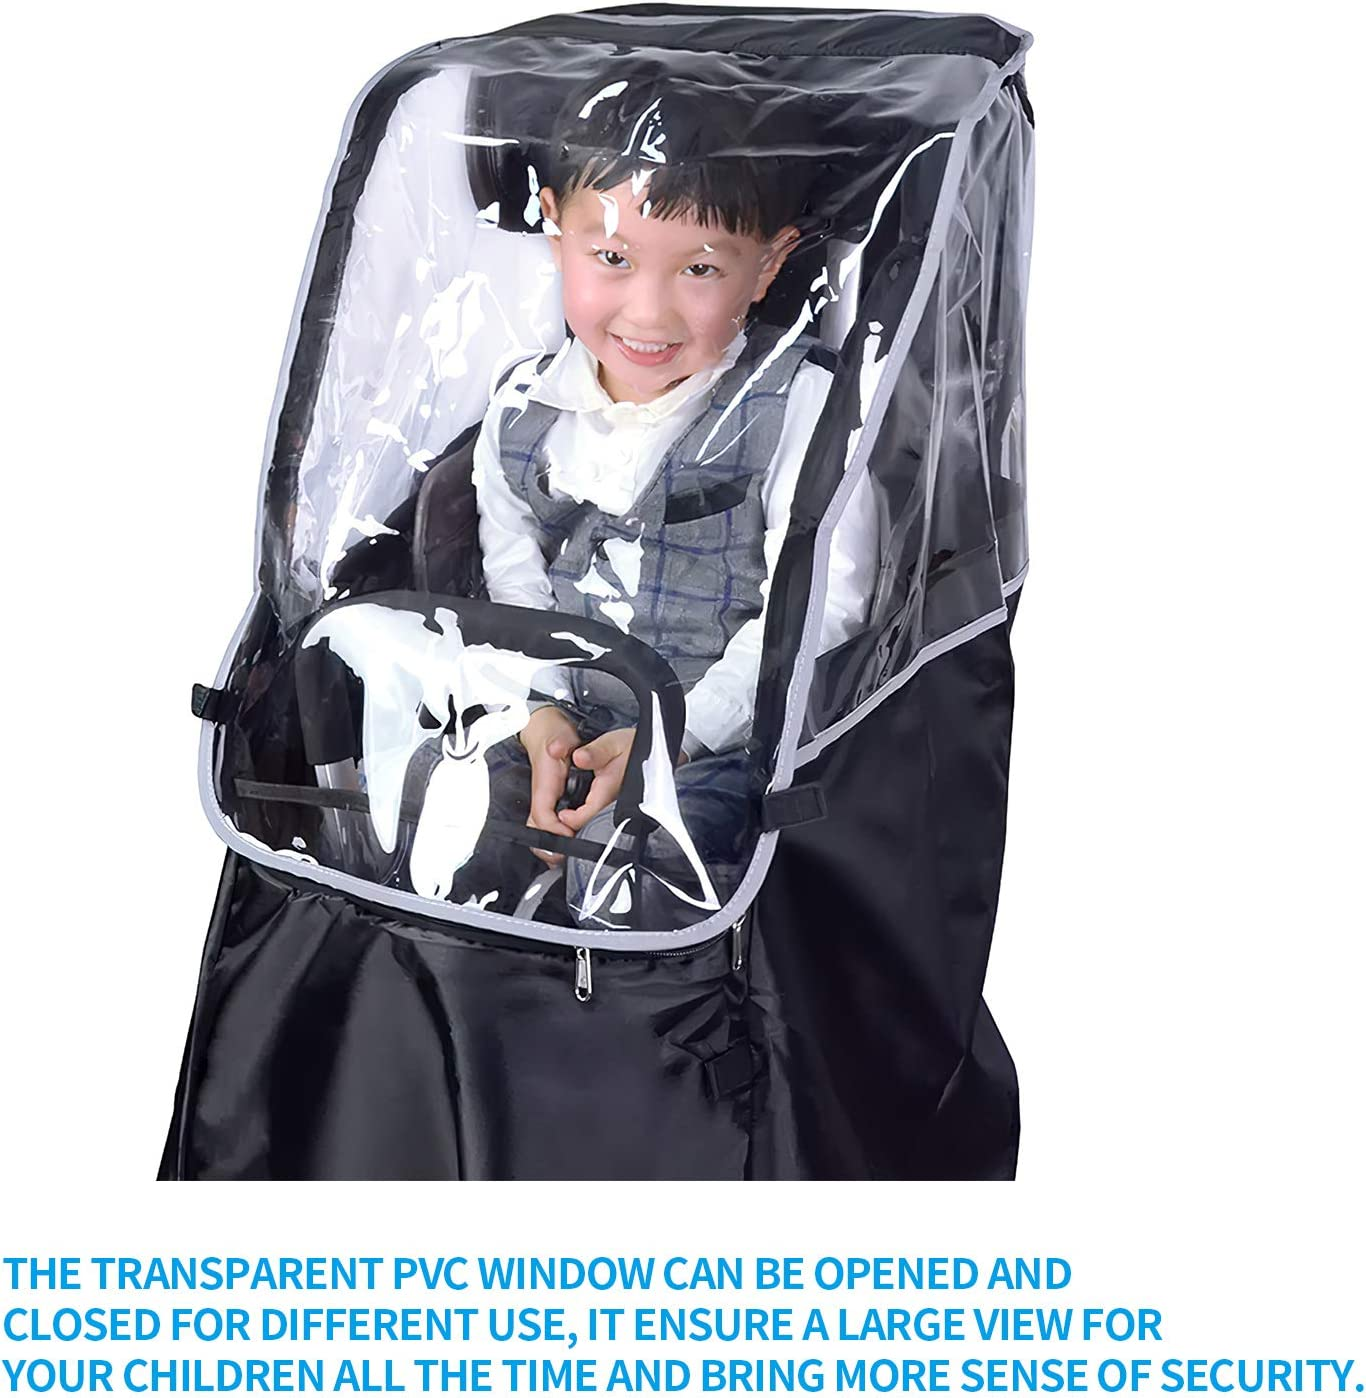 Practical Foldable Rain Cover GGHKDD Bicycle Rear Seat Children Rain Gear Durable Bike Accessory for Kids Bicycle Portable PVC Transparent Poncho